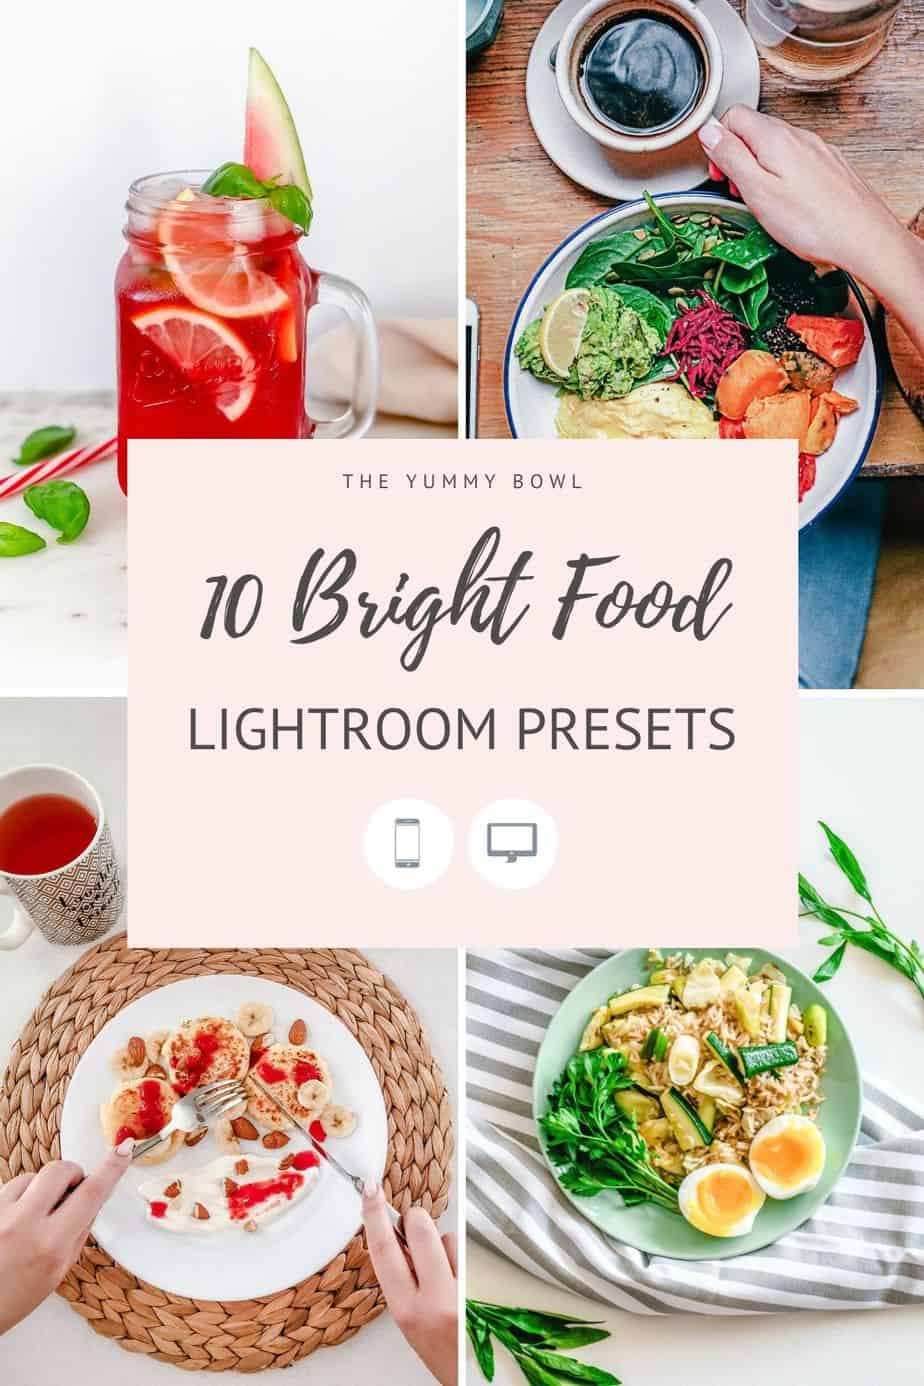 Create stunning bright and light food photographs with these 10 Bright Lightroom Presets. Edit with style. Improve your content.Grow your brand.